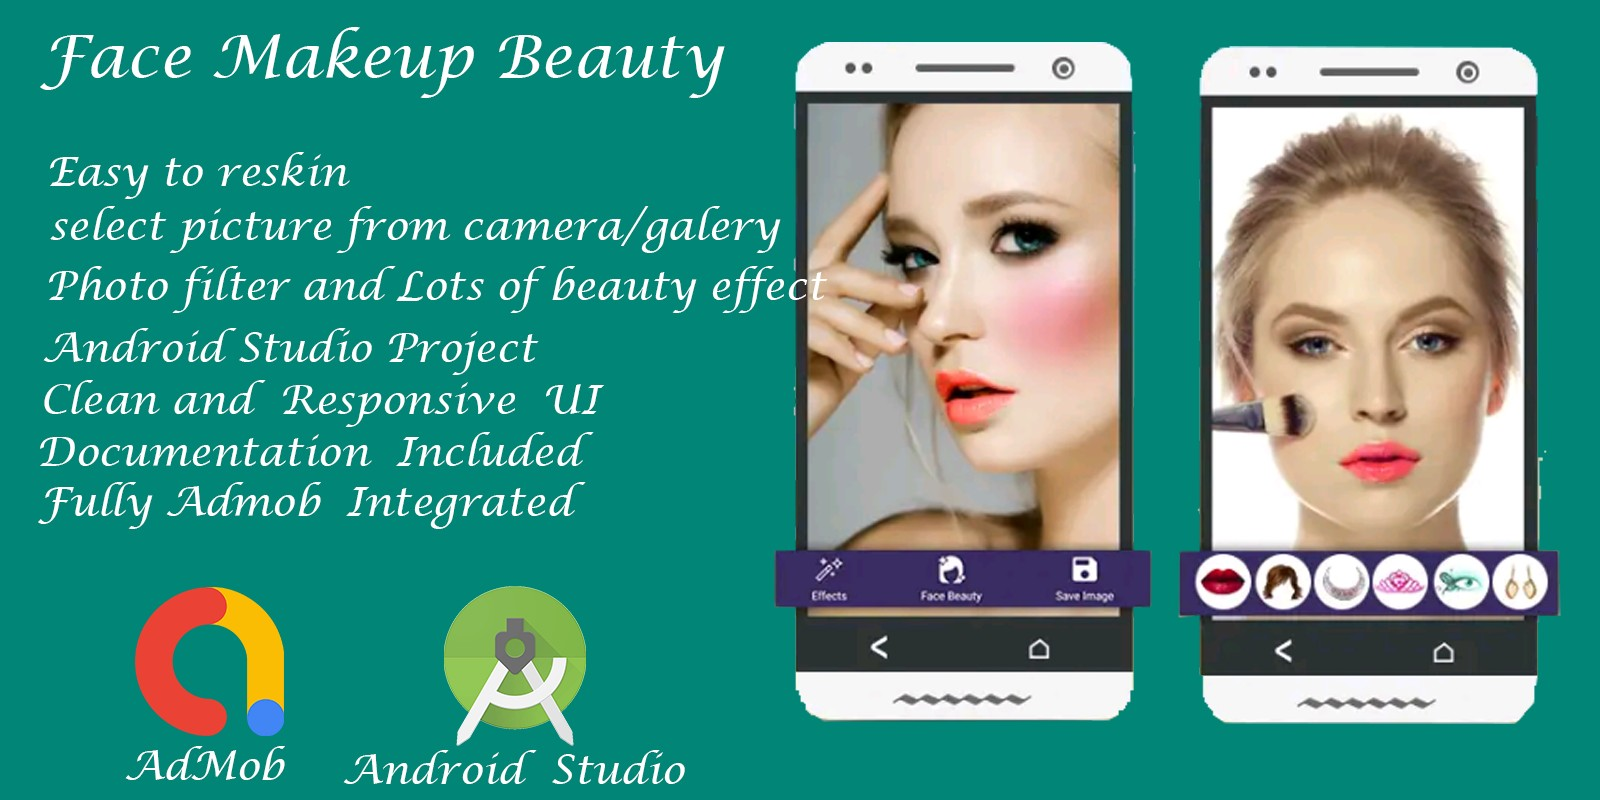 Face Beauty Maker - Android Studio Code